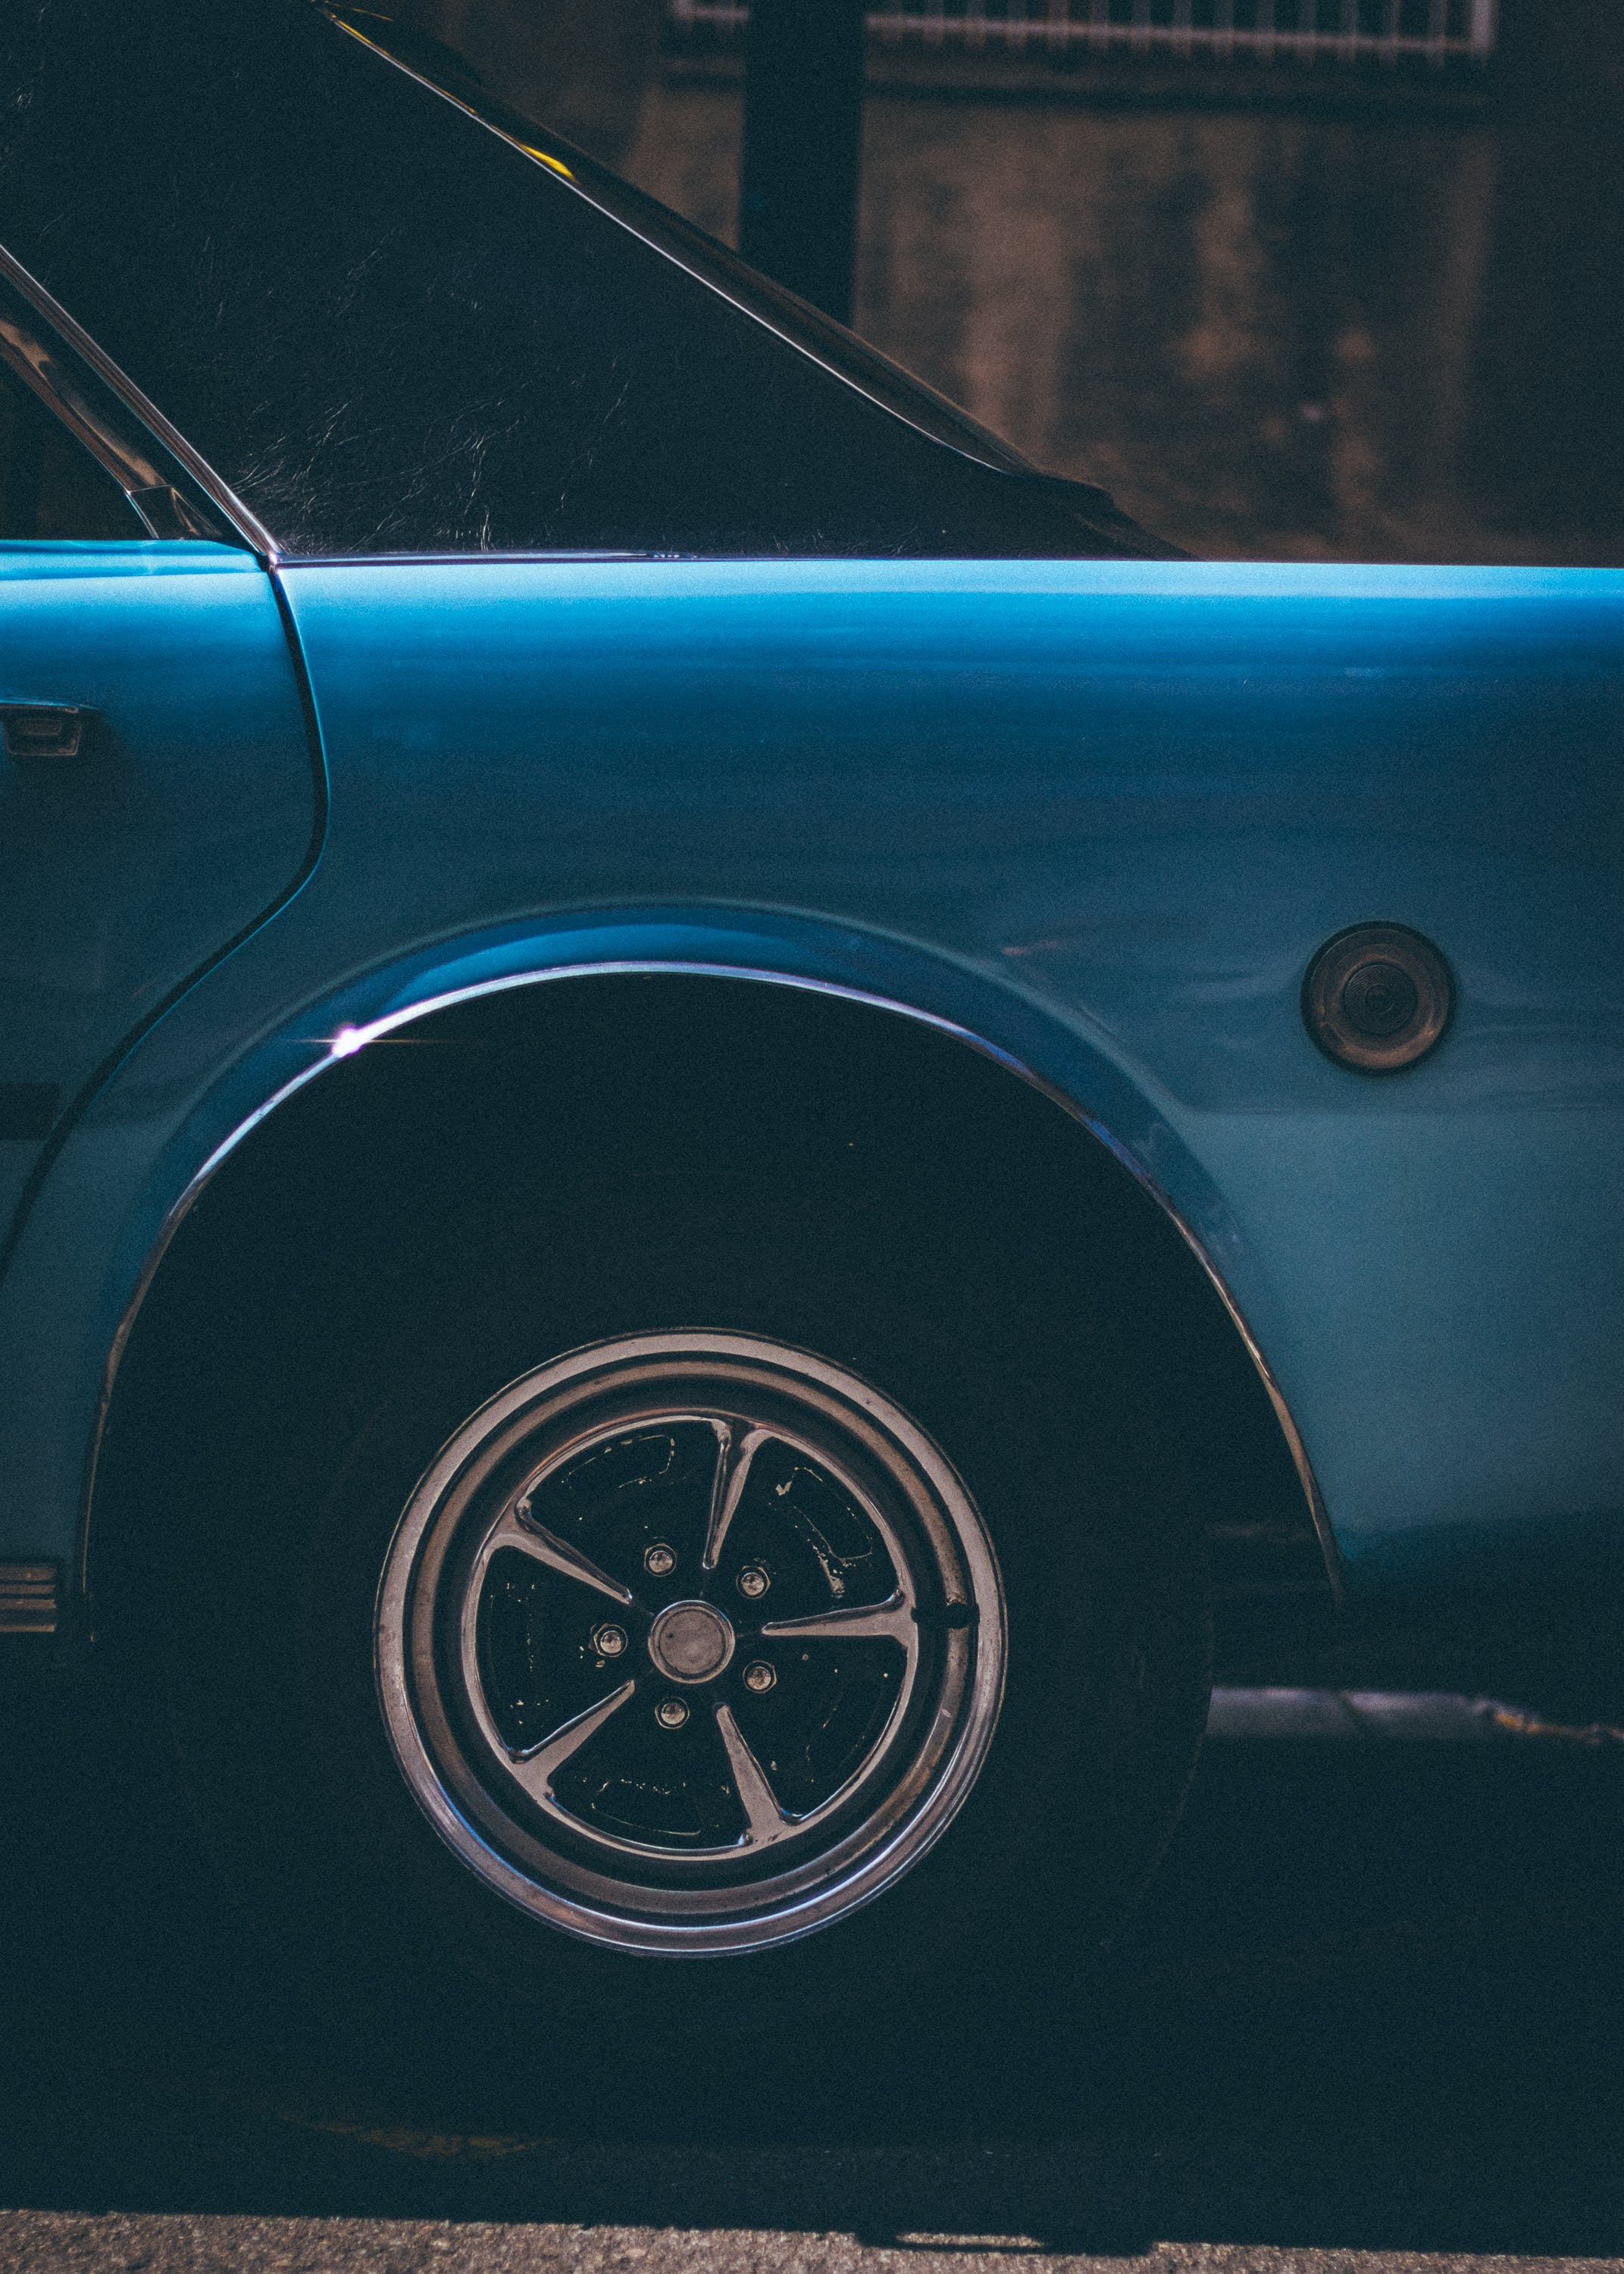 Blue Classic Car With Gray 5-spoke Wheel and Tire